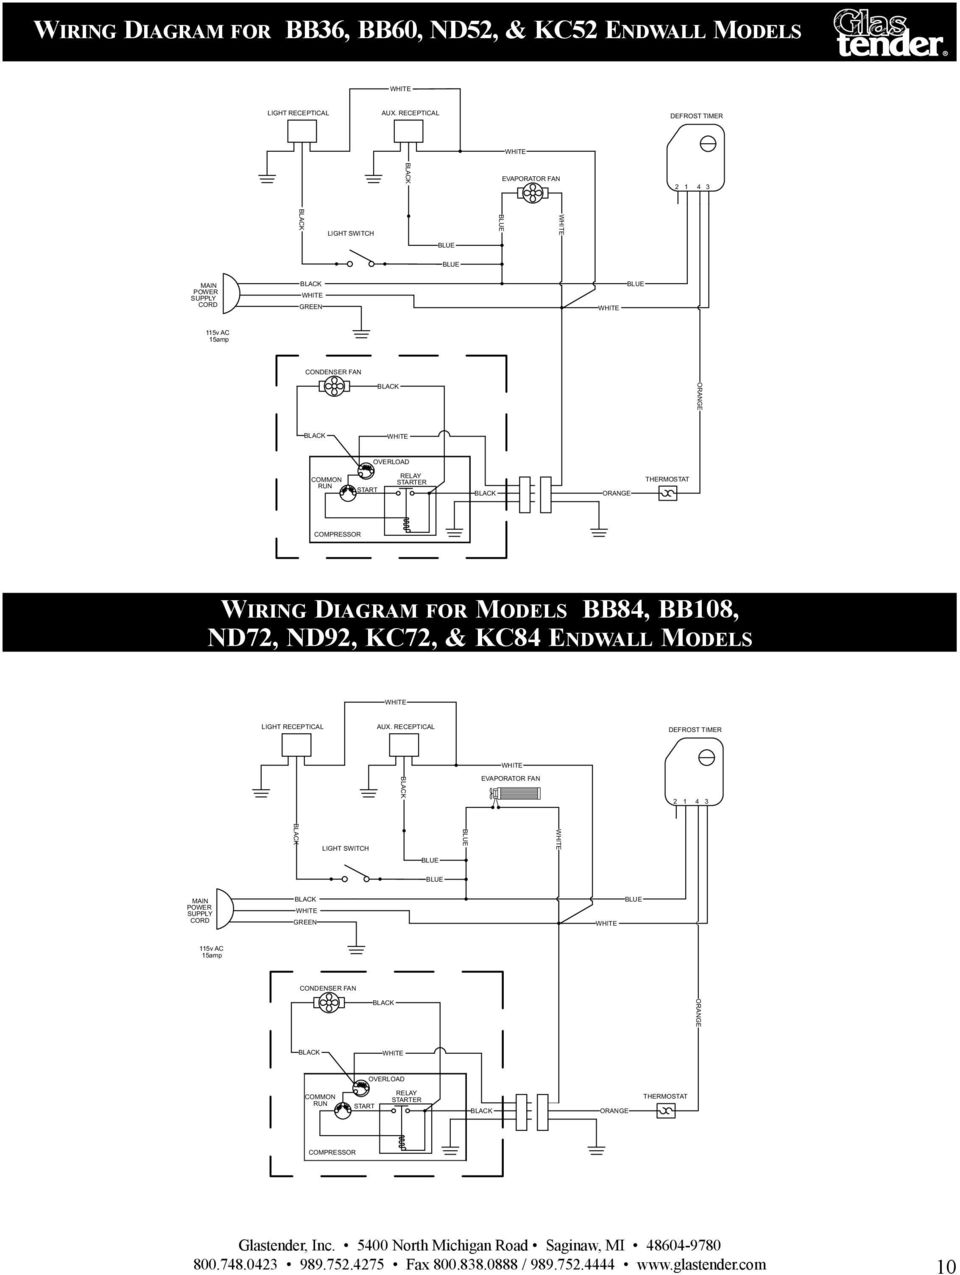 Operation Manual Parts Directory And Price List Pdf Door Shroud Latch Assembly Diagram For Maytag Common Run Start Relay Starter Ack Orange Thermostat Compressor Iring Models Bb8 Bb08